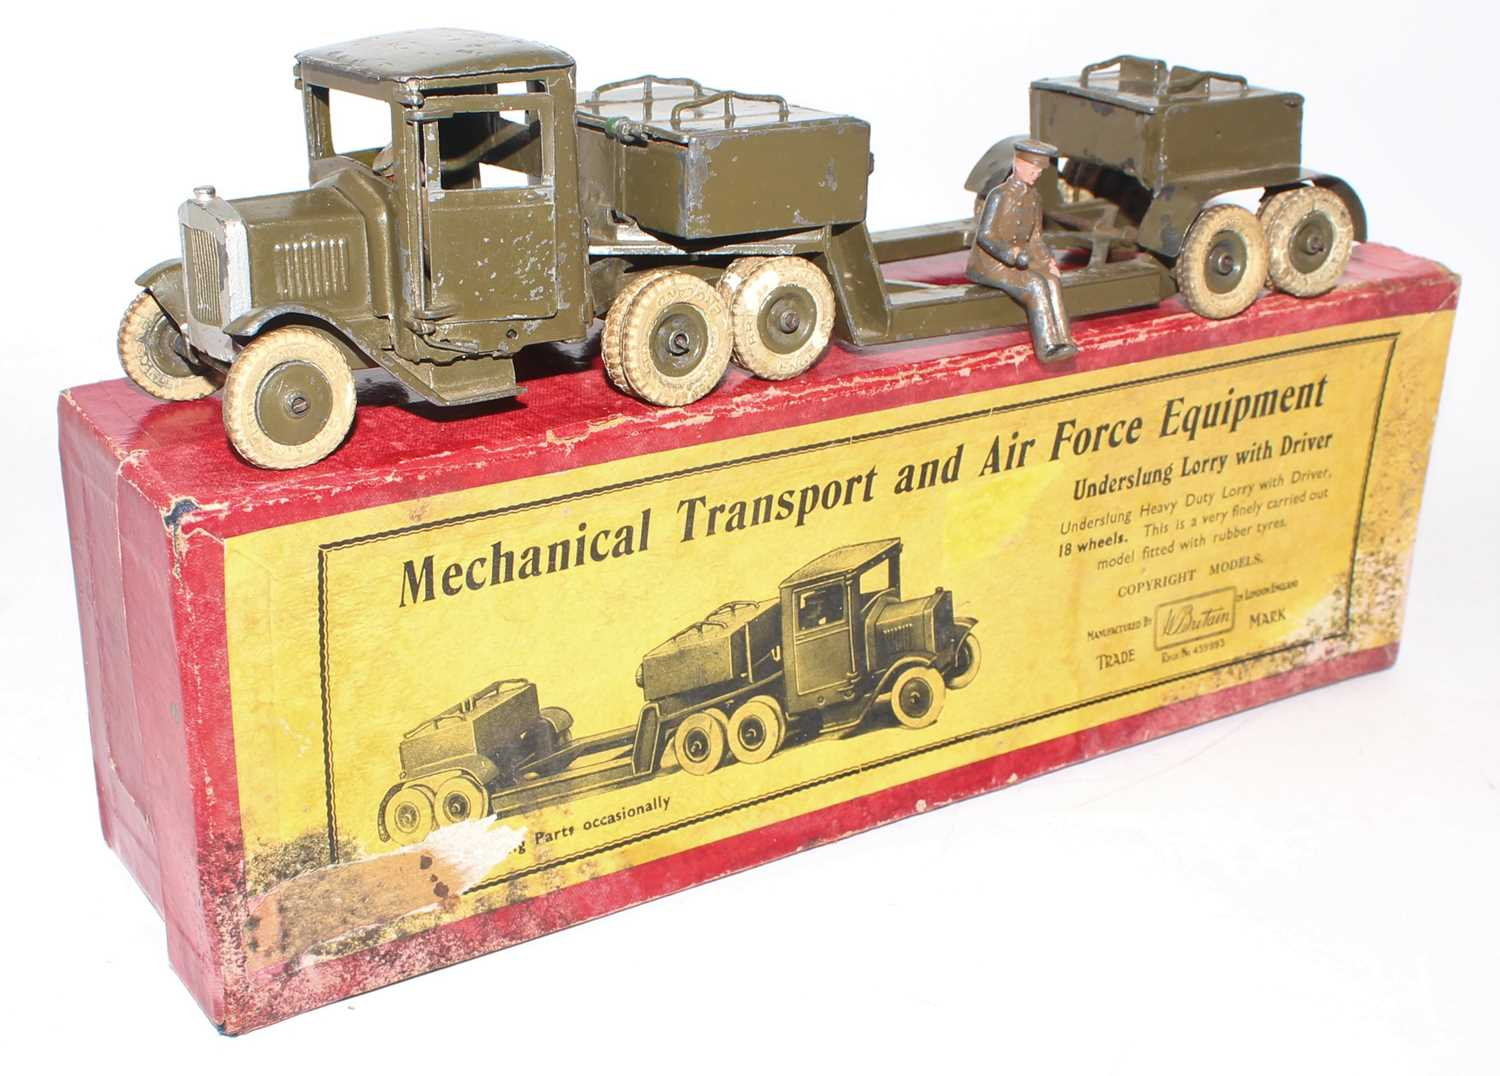 Britains Set No.1641 Underslung Lorry, 1940s example, comprising of square nose 10-wheel Tractor